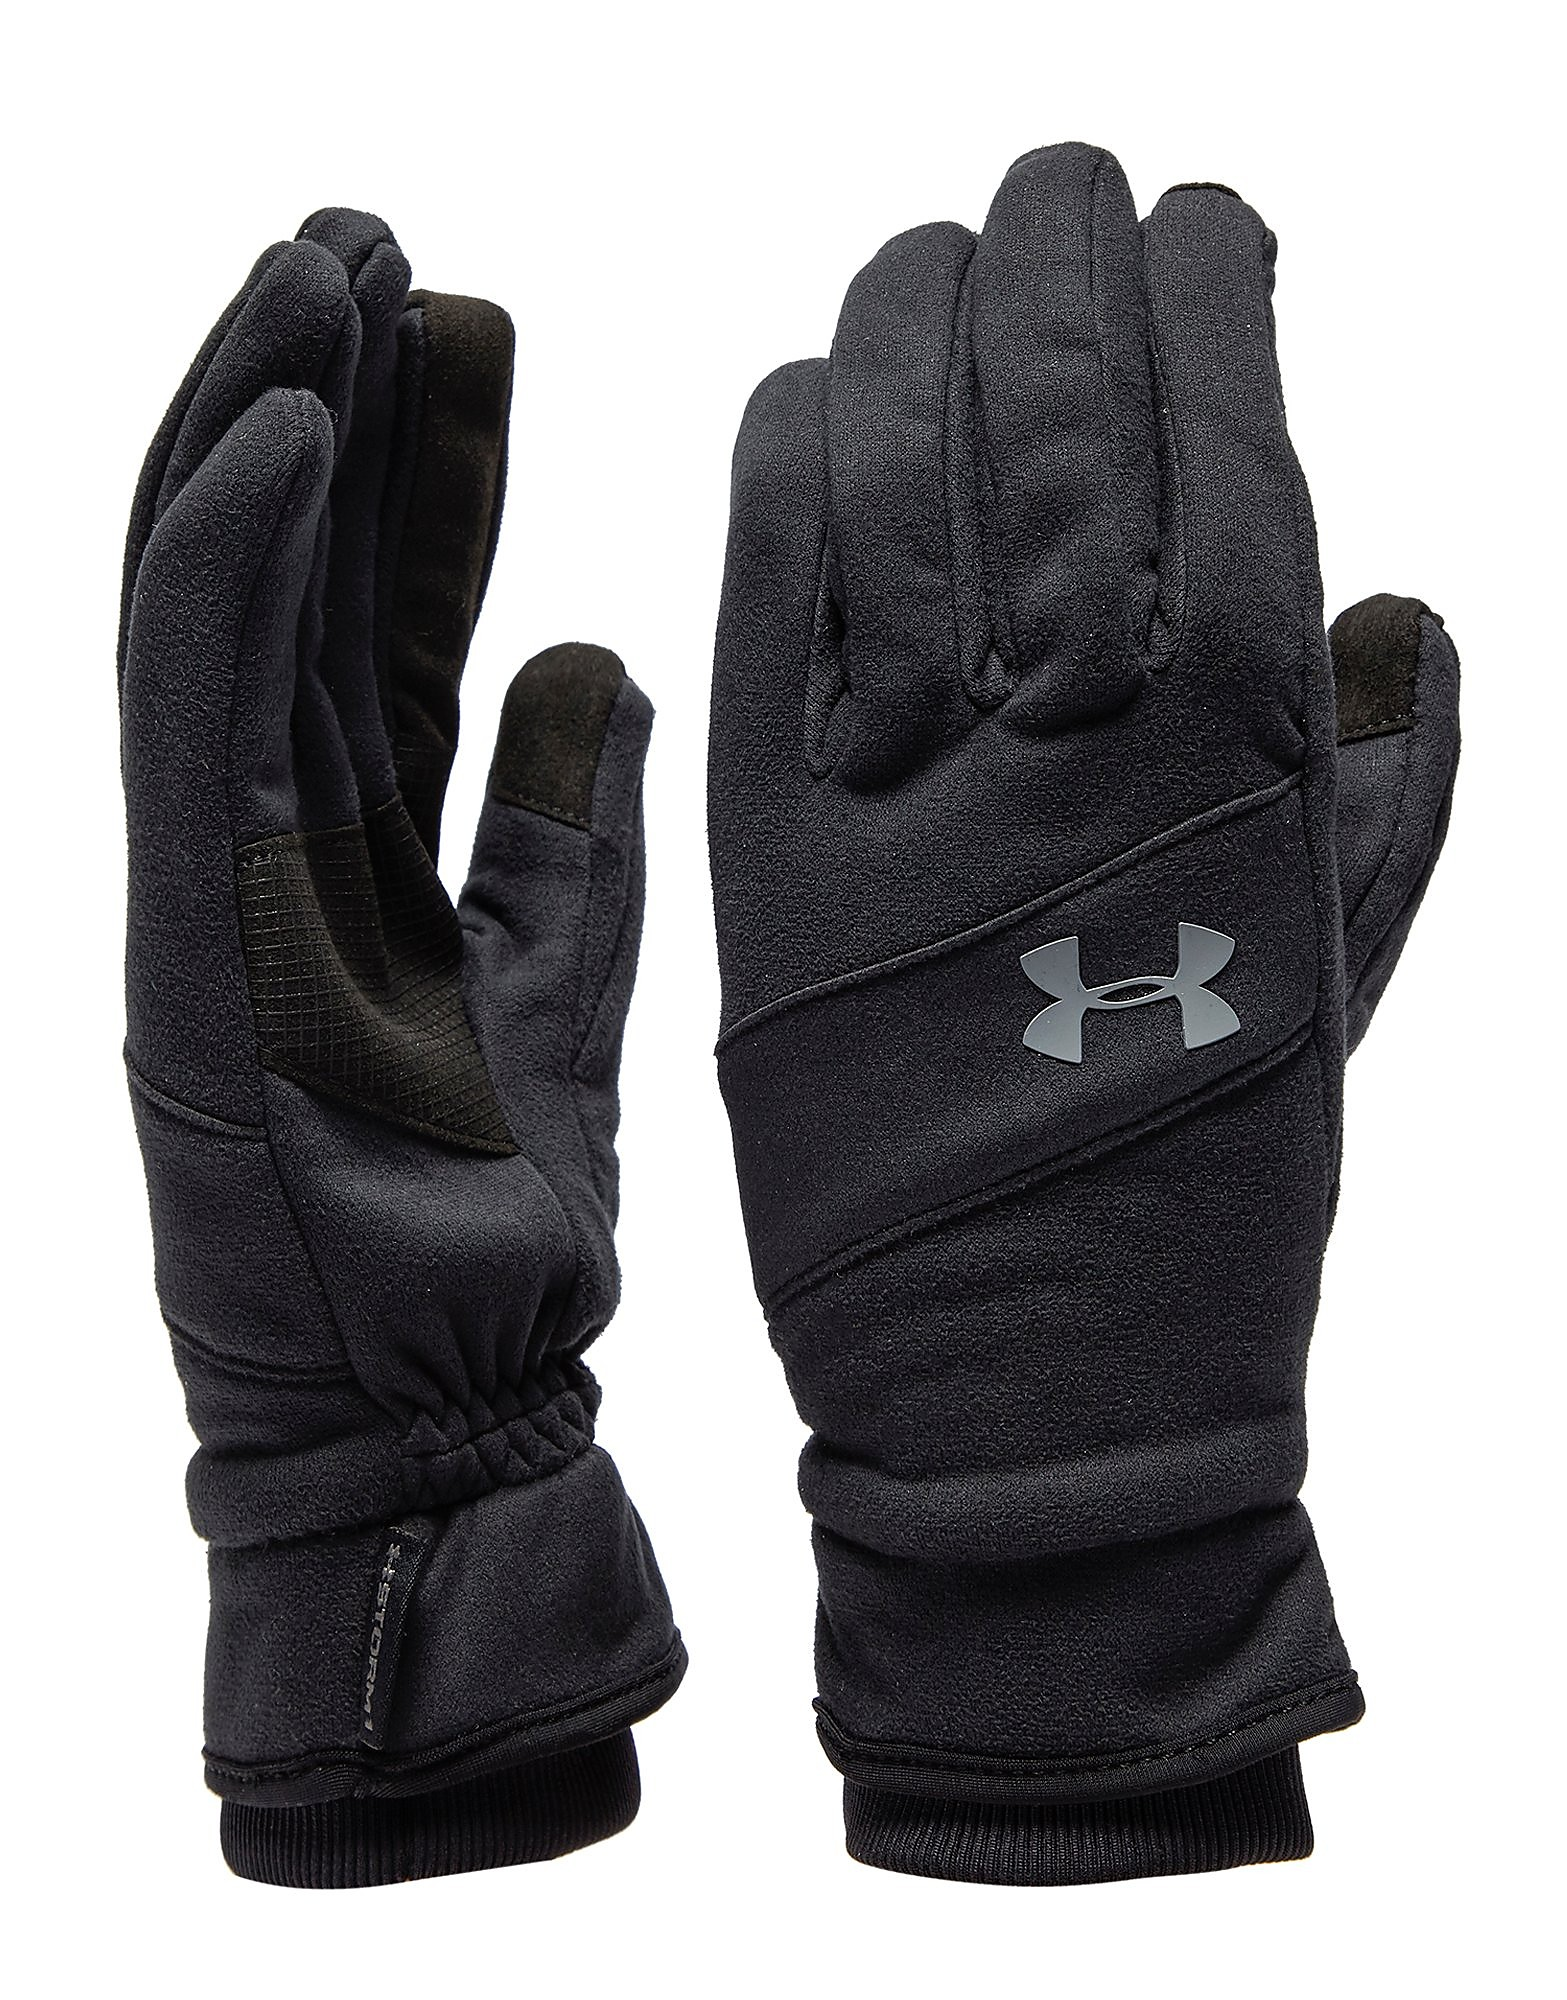 Under Armour Storm ColdGear Infrared Elements Handschuhe